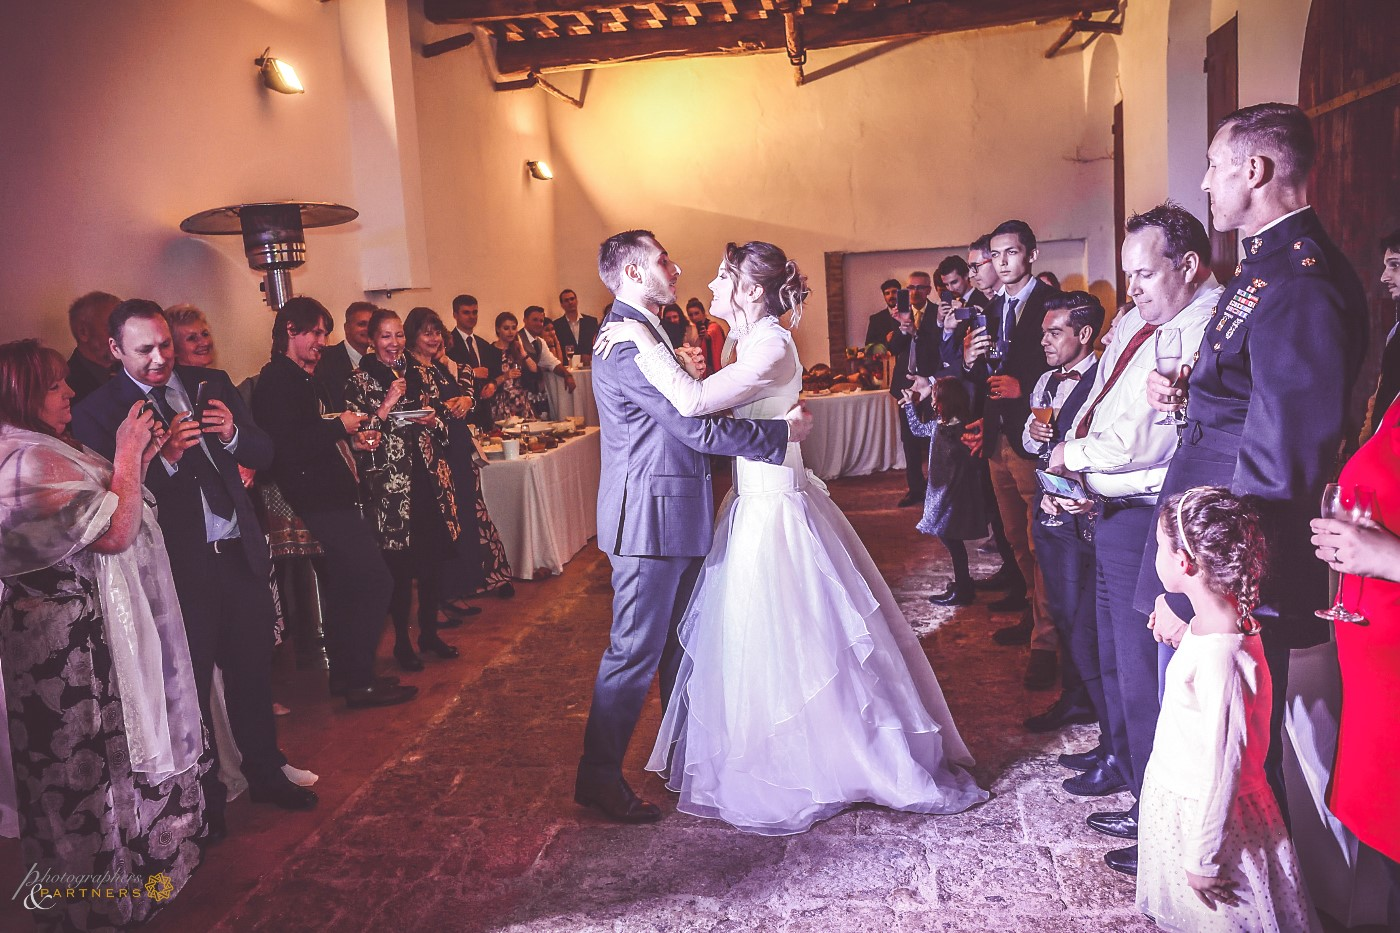 The first dance during the aperitif